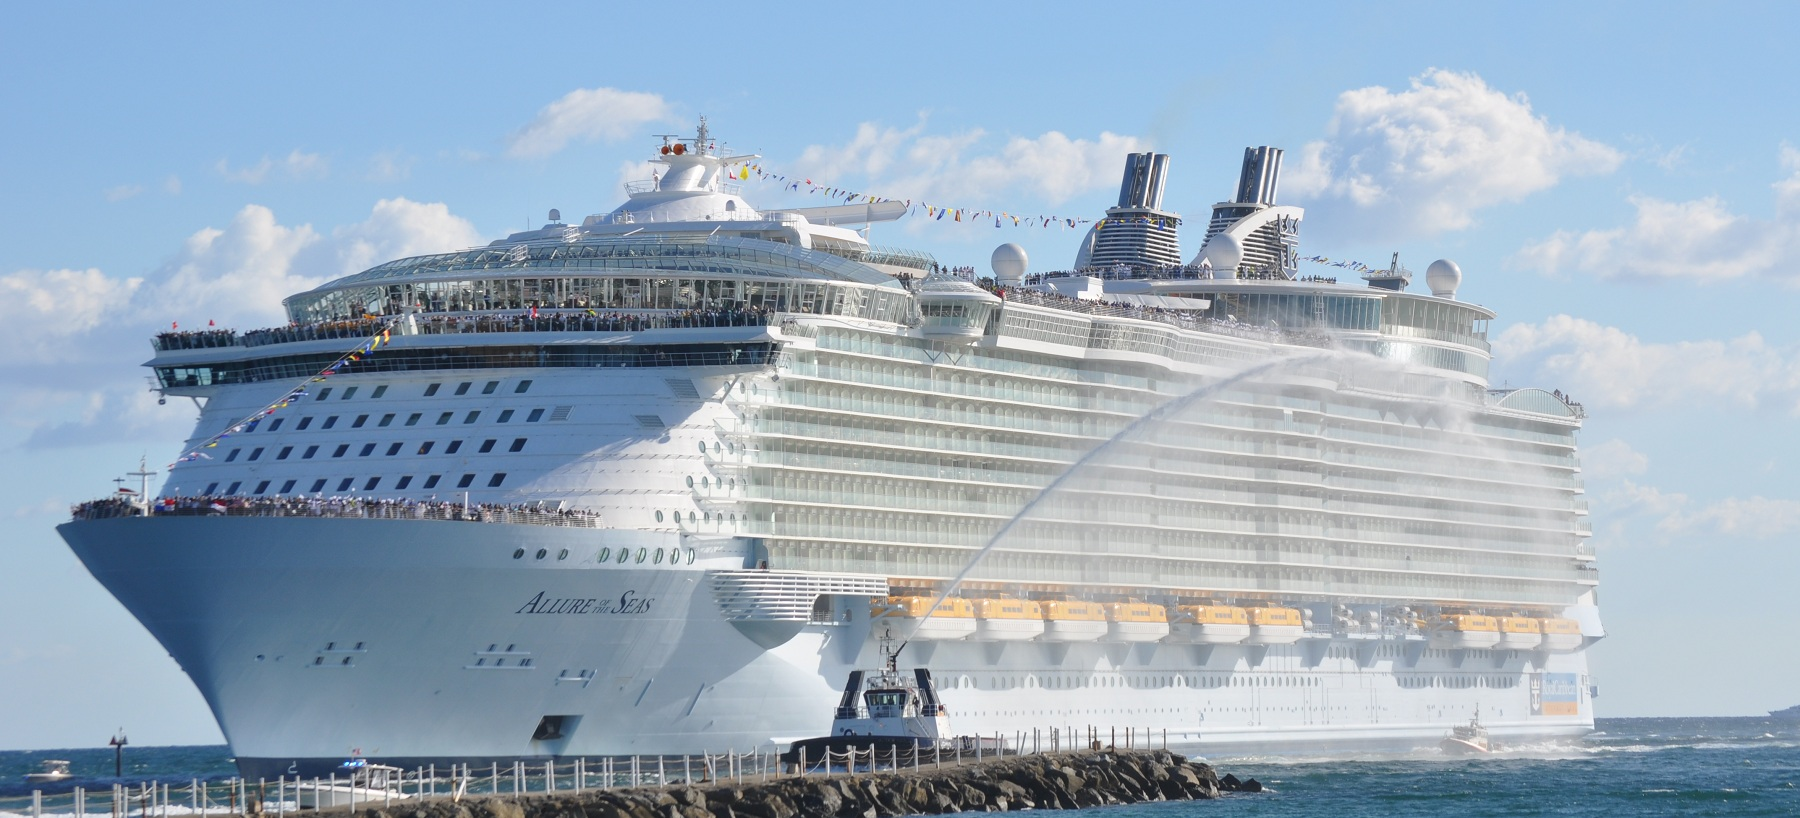 Allure of the Seas, Front view